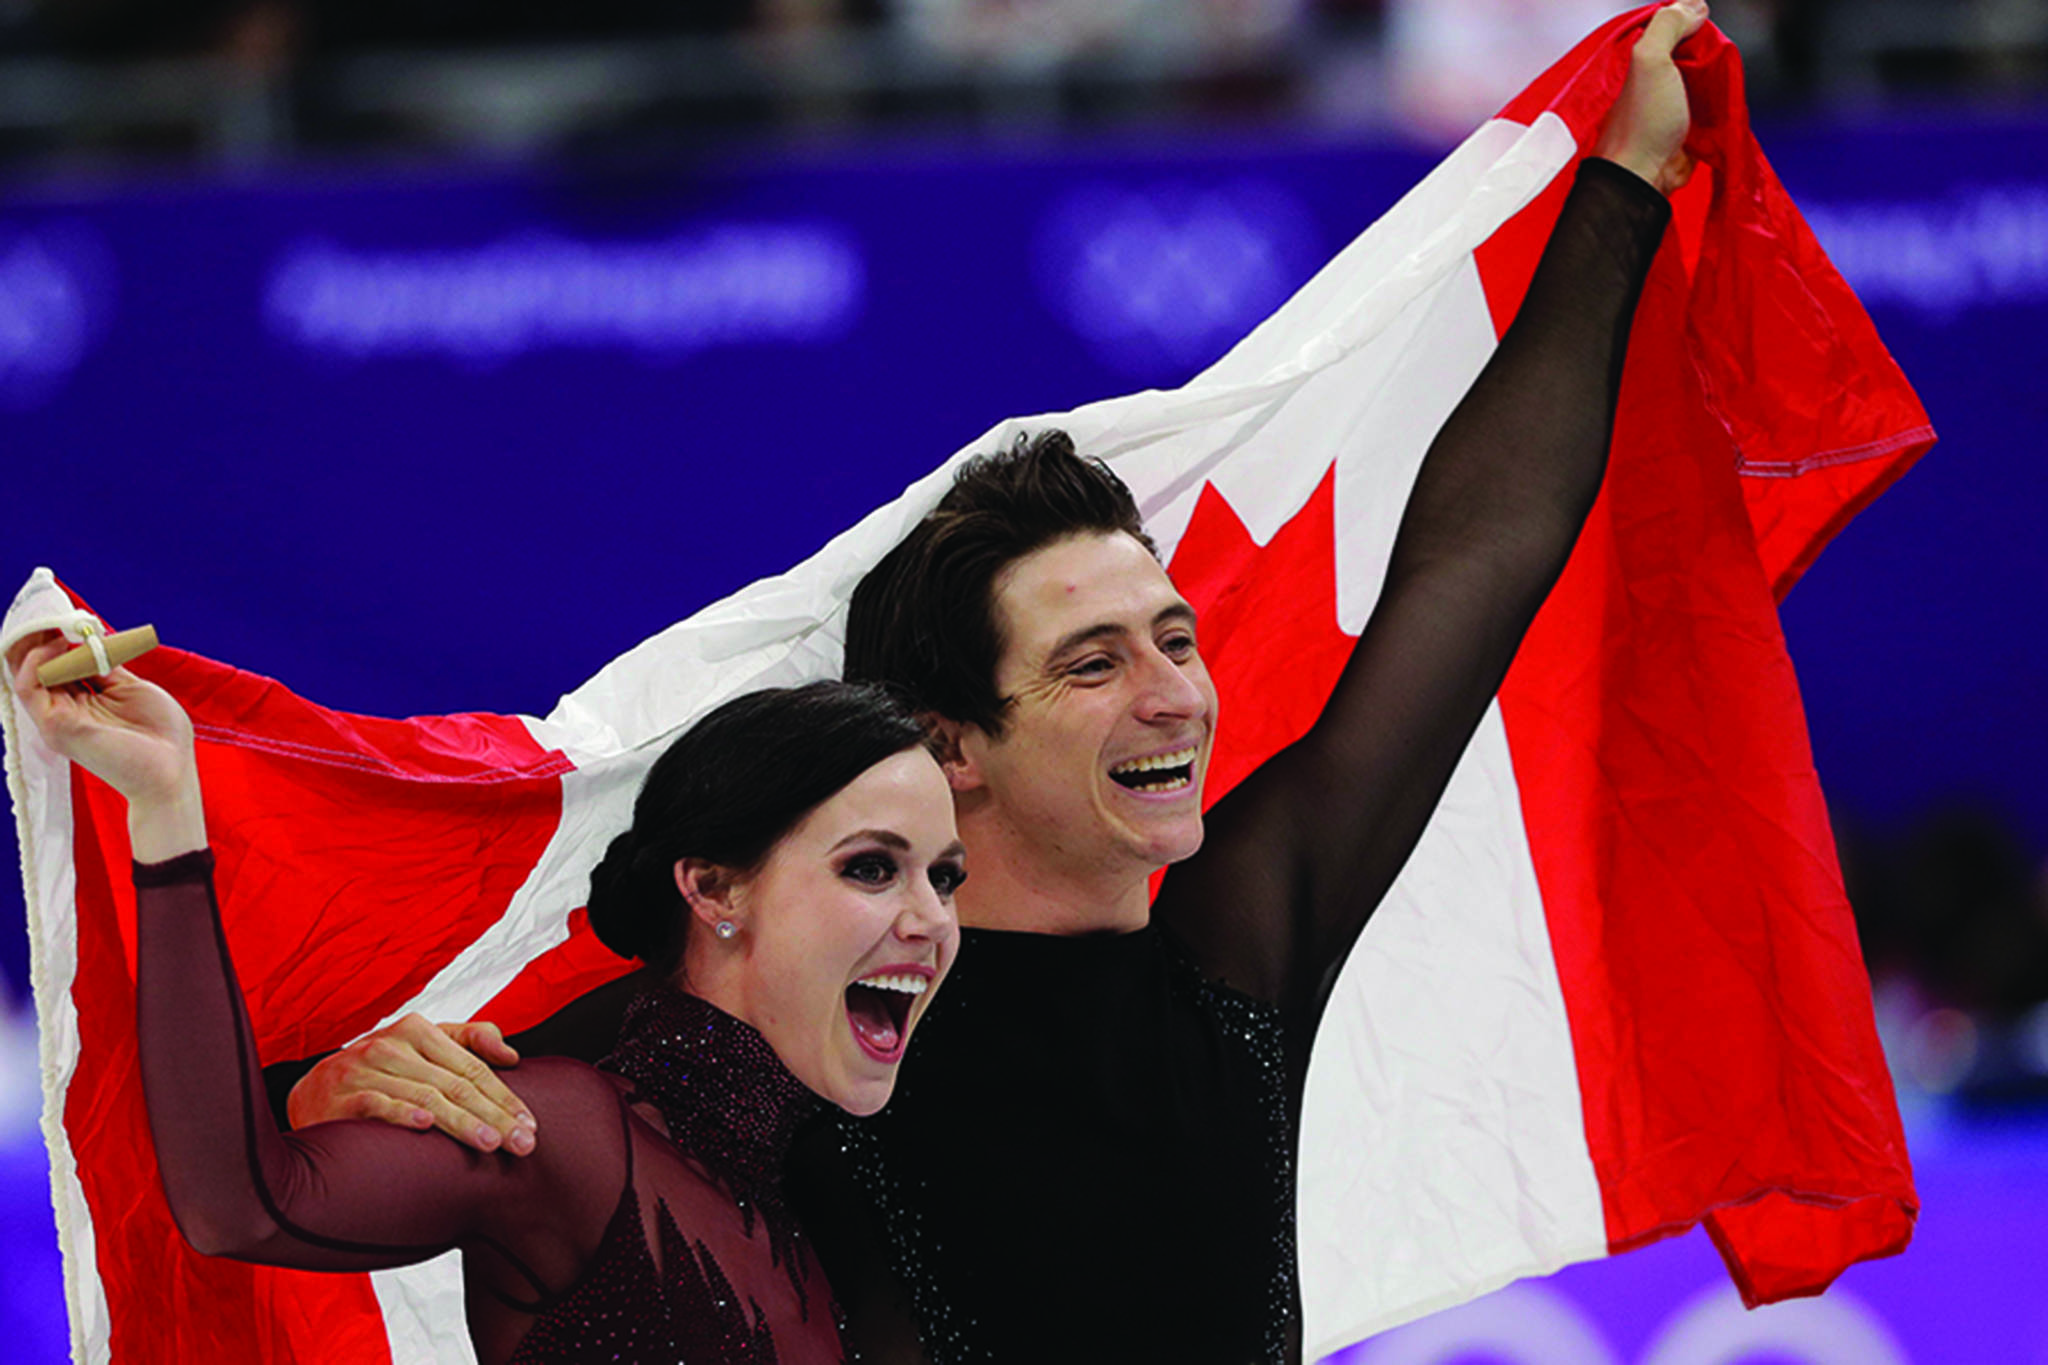 Tessa Virtue and Scott Moir of Canada celebrate during the venue ceremony after winning the ice dance, free dance figure skating final in the Gangneung Ice Arena at the 2018 Winter Olympics in Gangneung, South Korea, Tuesday, Feb. 20, 2018. (AP Photo/David J. Phillip)